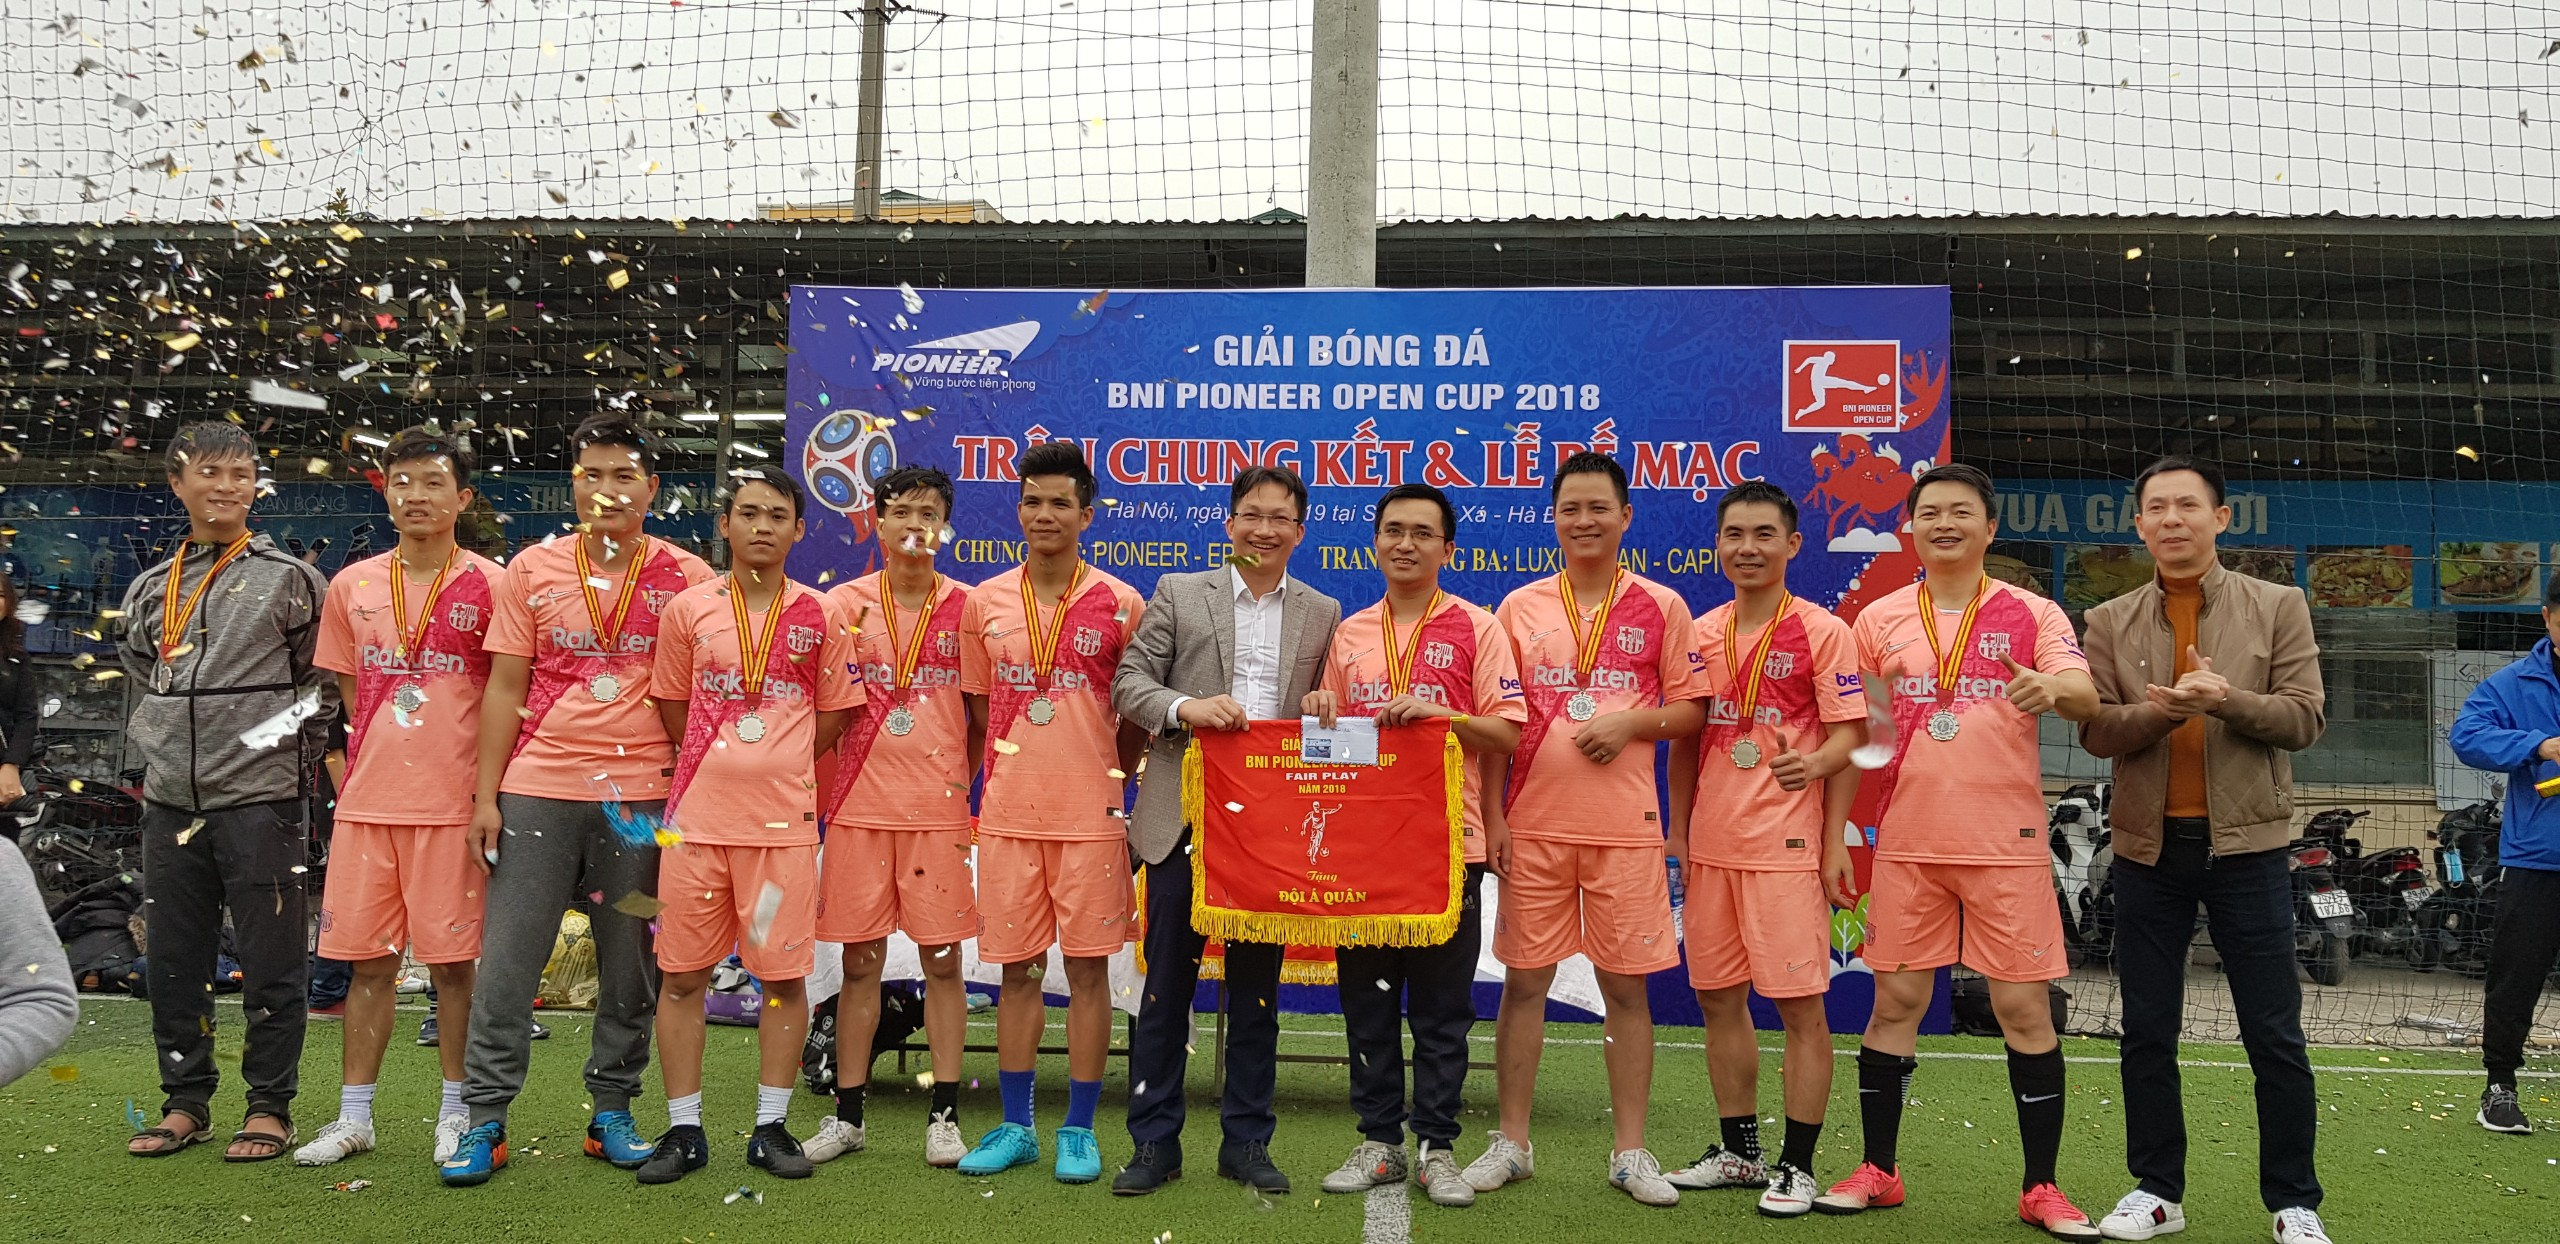 Chung kết BNI Pioneer Open Cup 2018